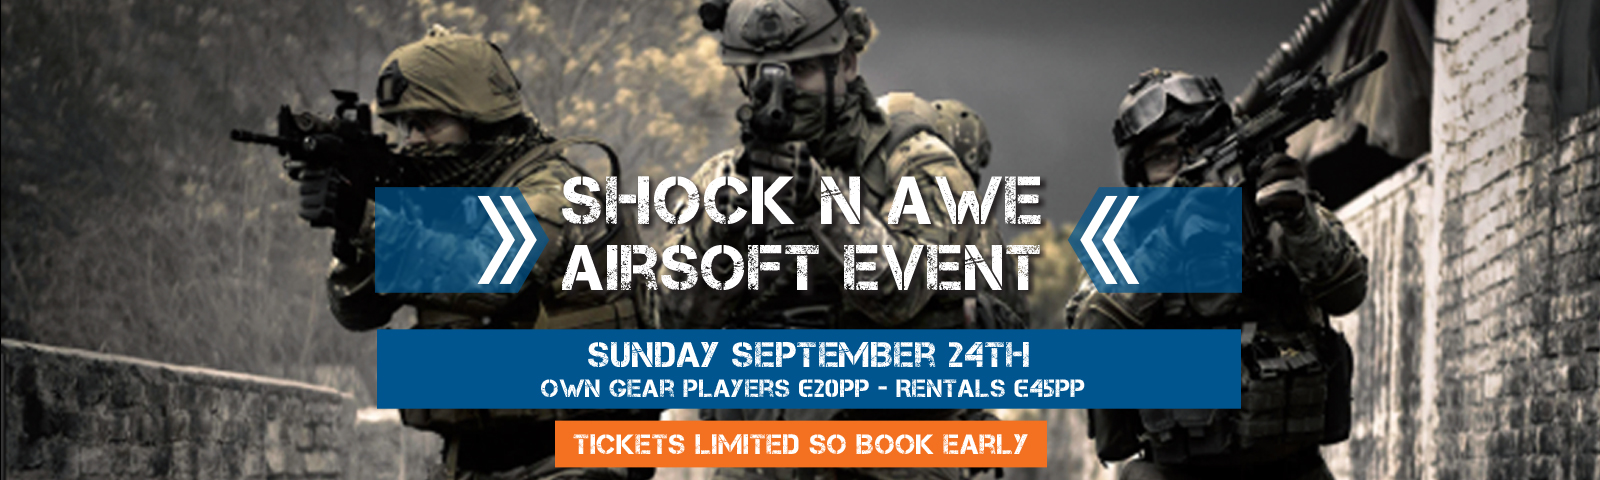 Web-Event-airsoft_slider